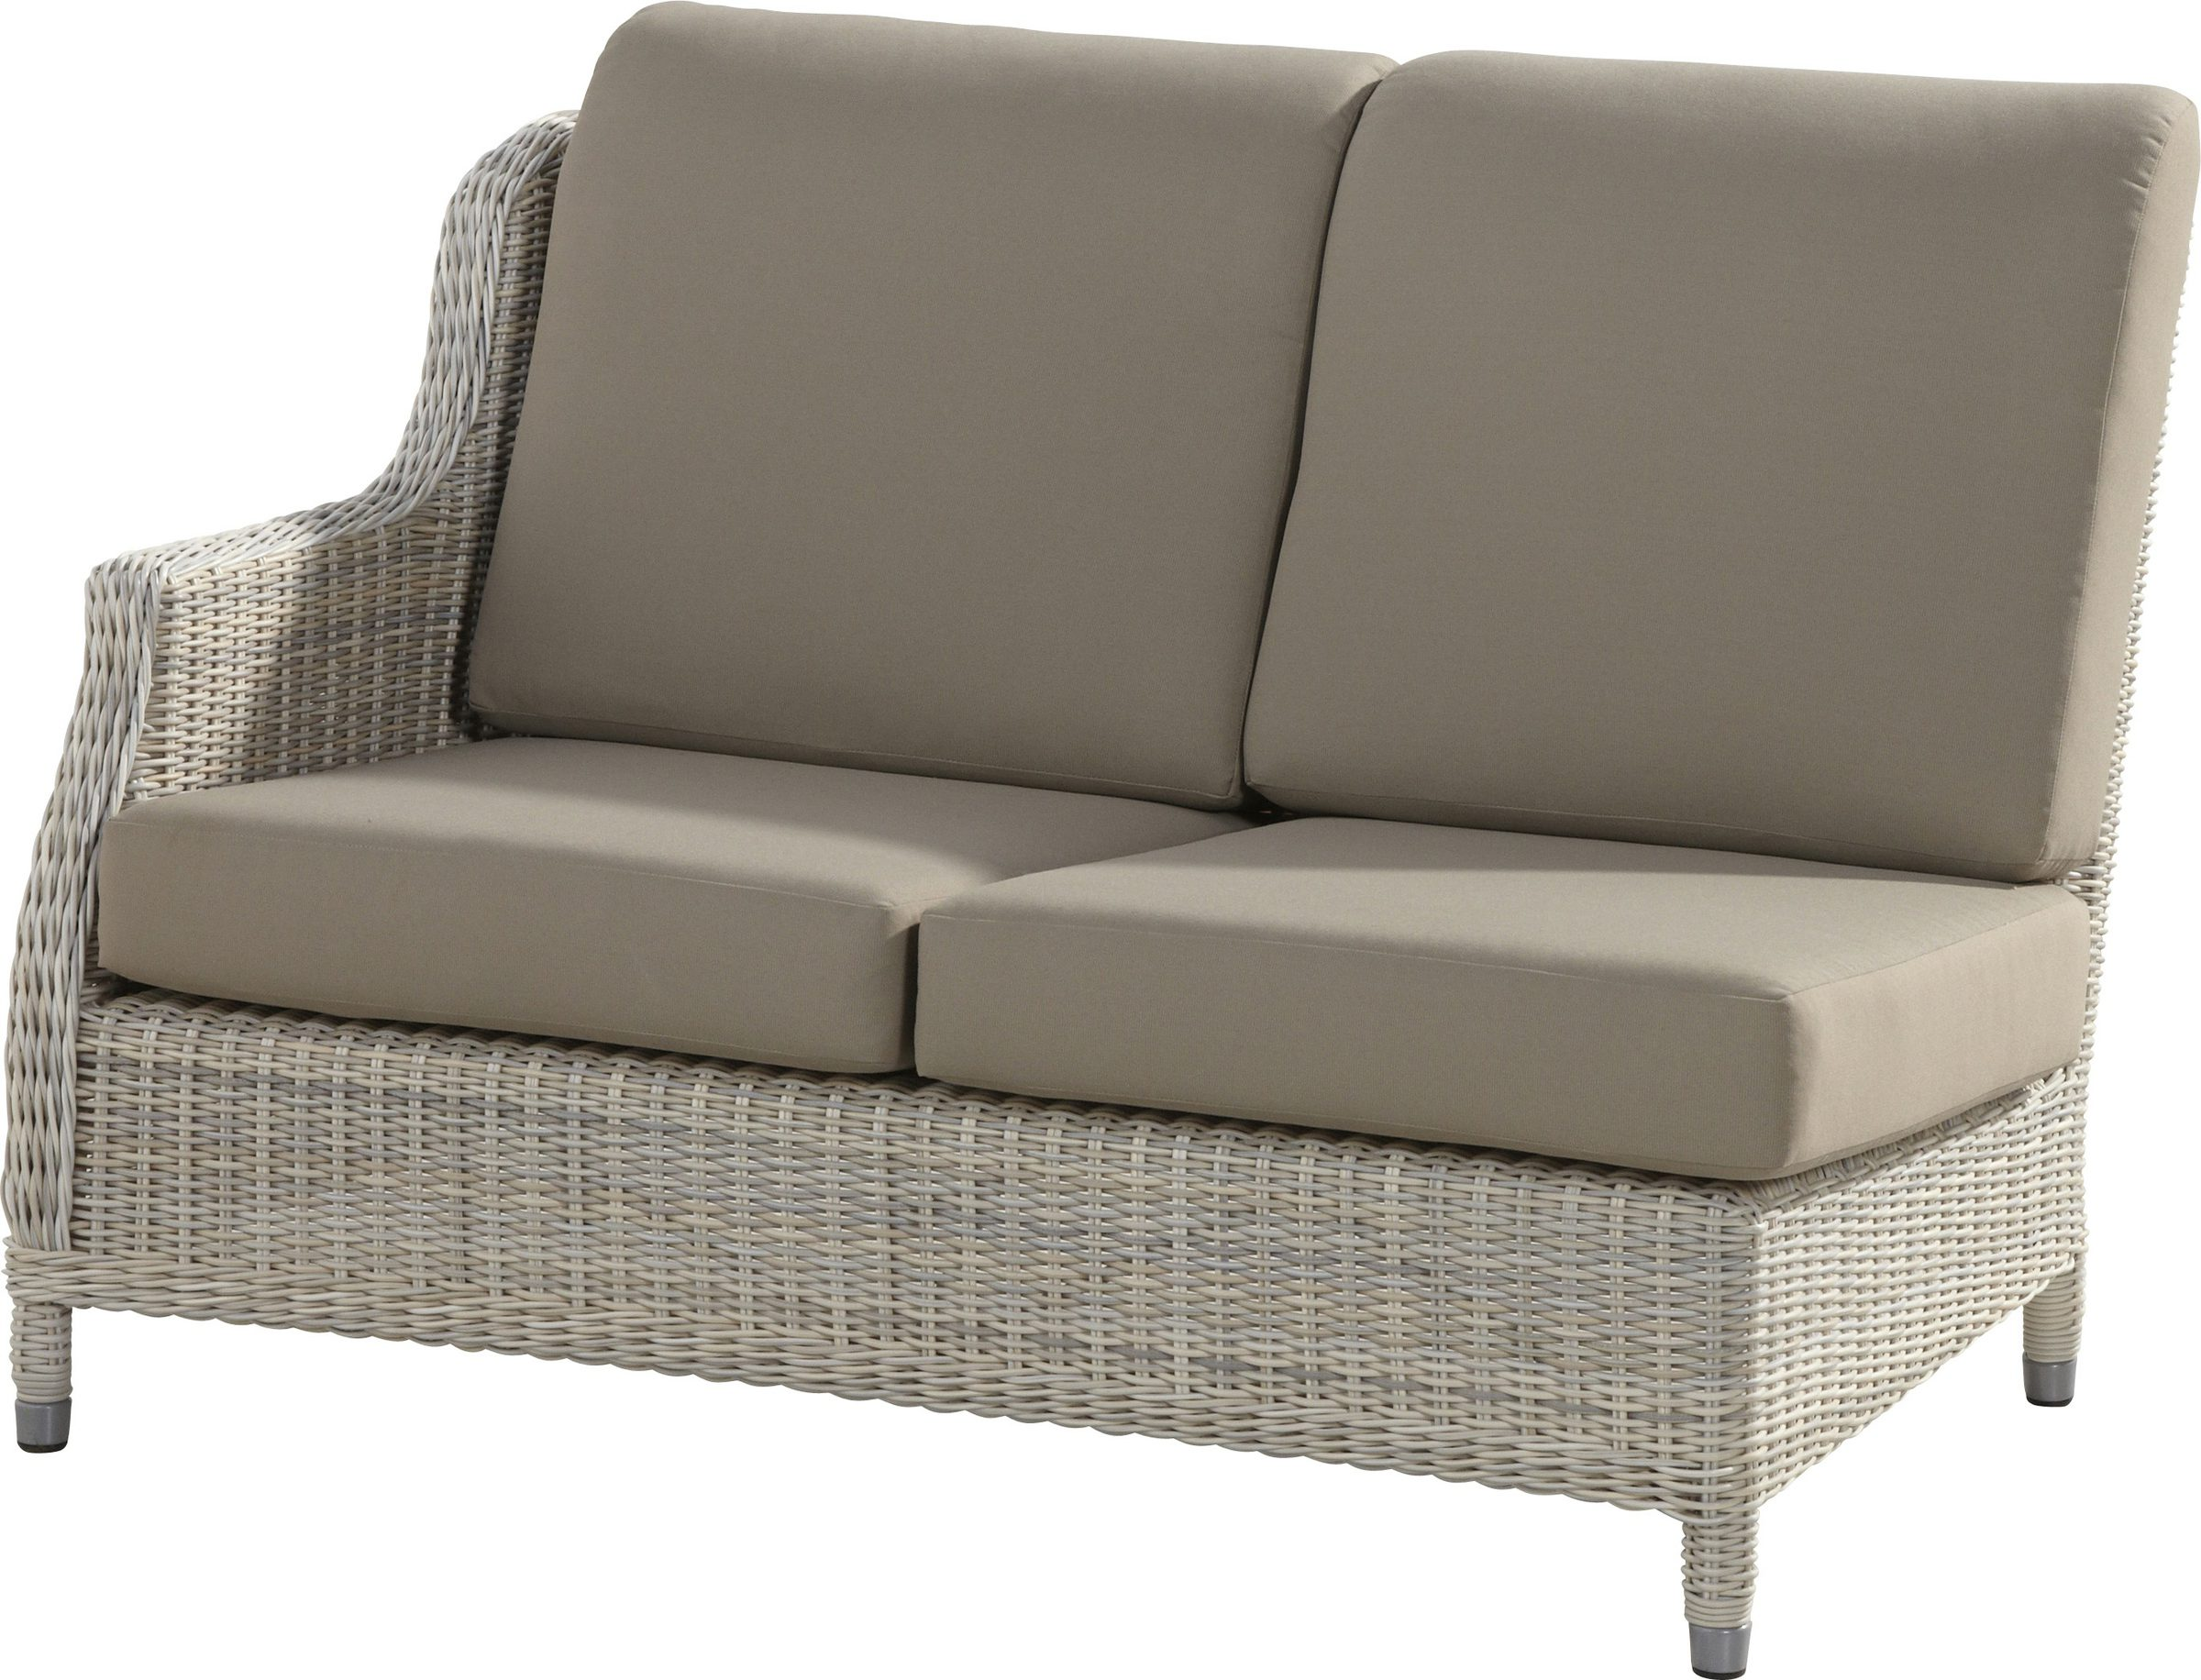 212383_Brighton modular 2 seater right arm with 4 cushions Provance.jpg